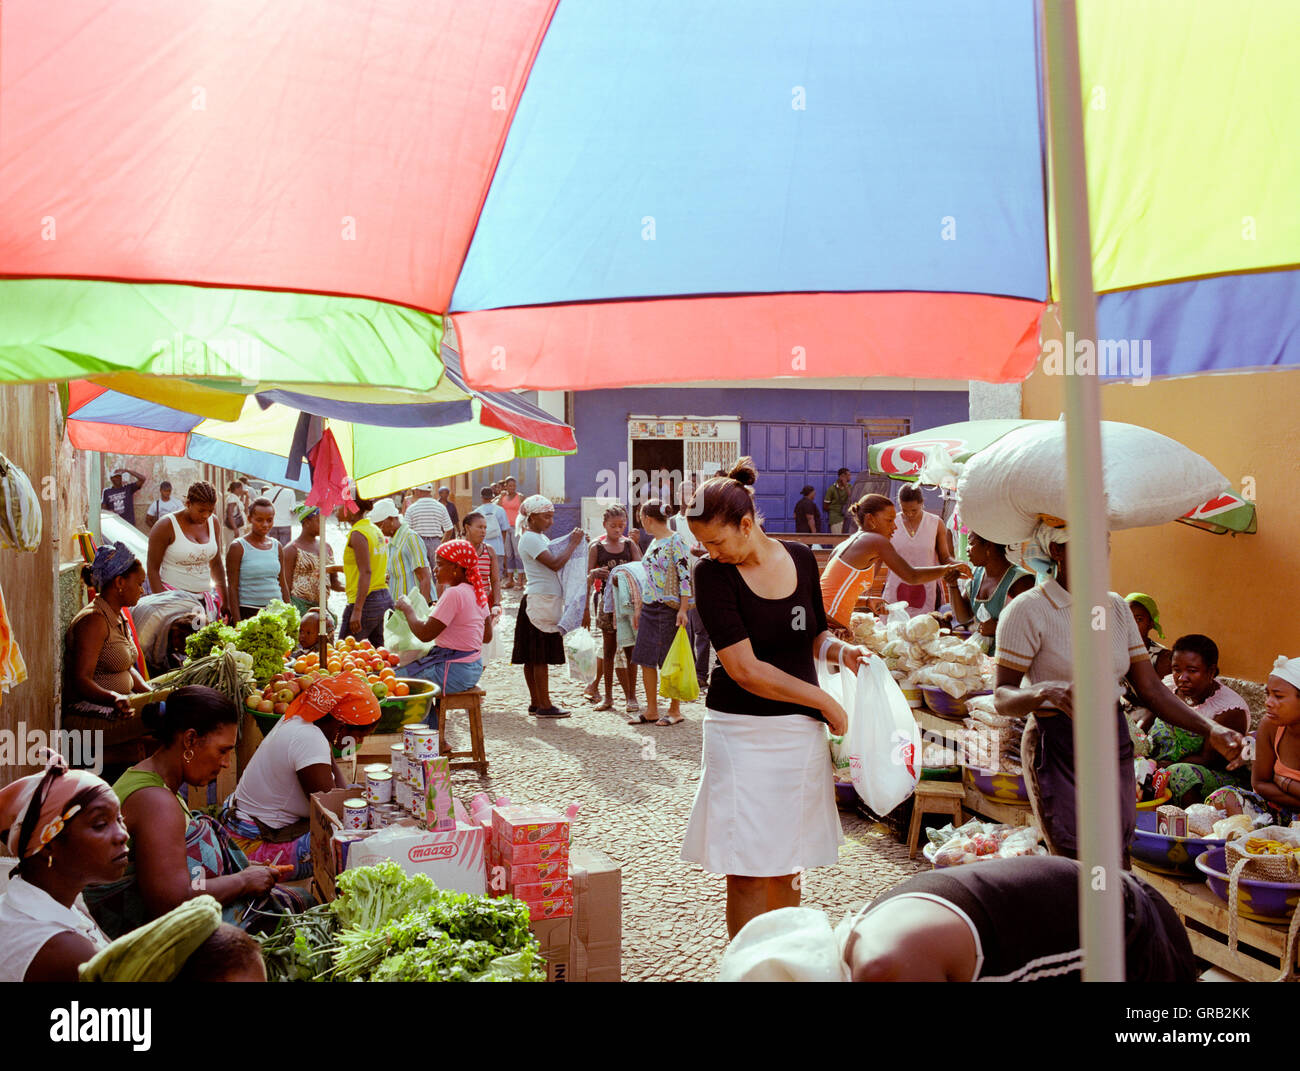 A woman shopping at  the Mercado de Prahia, a morning market in the town of Praia, Santiago, Cape Verde, Africa. - Stock Image